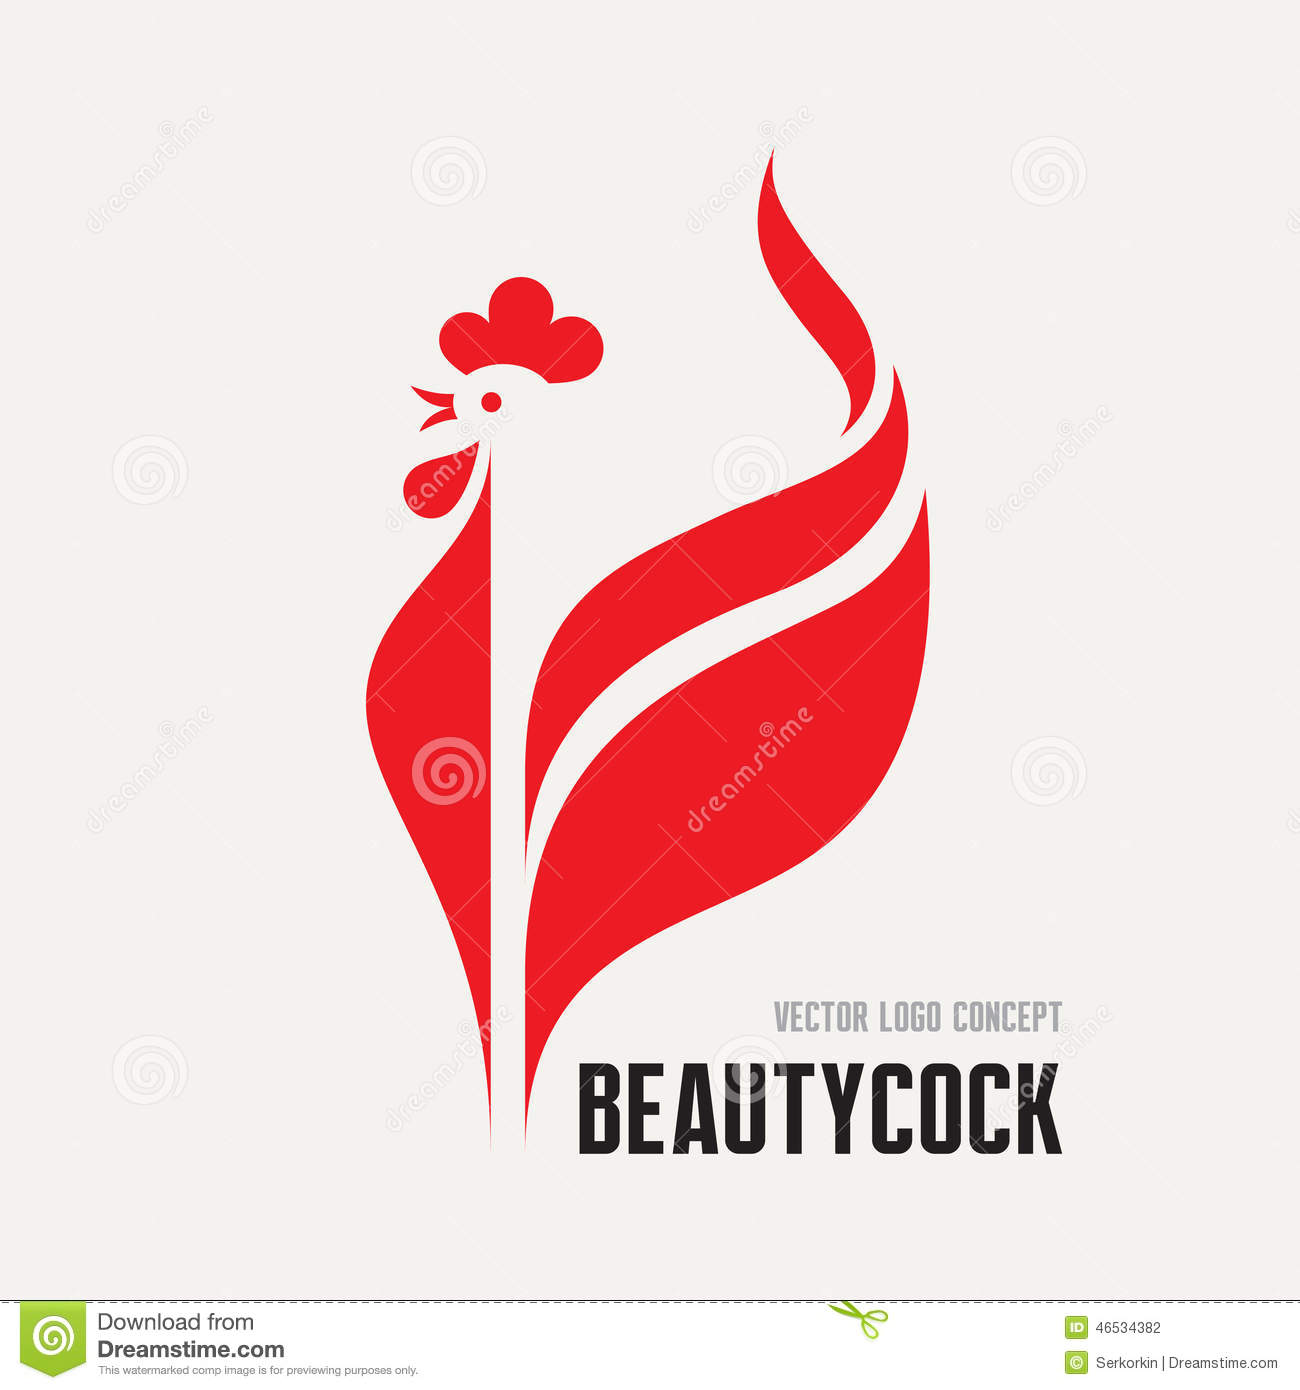 Beauty cock rooster vector logo concept bird cock minimal illustration vector logo template - Cock designing ...